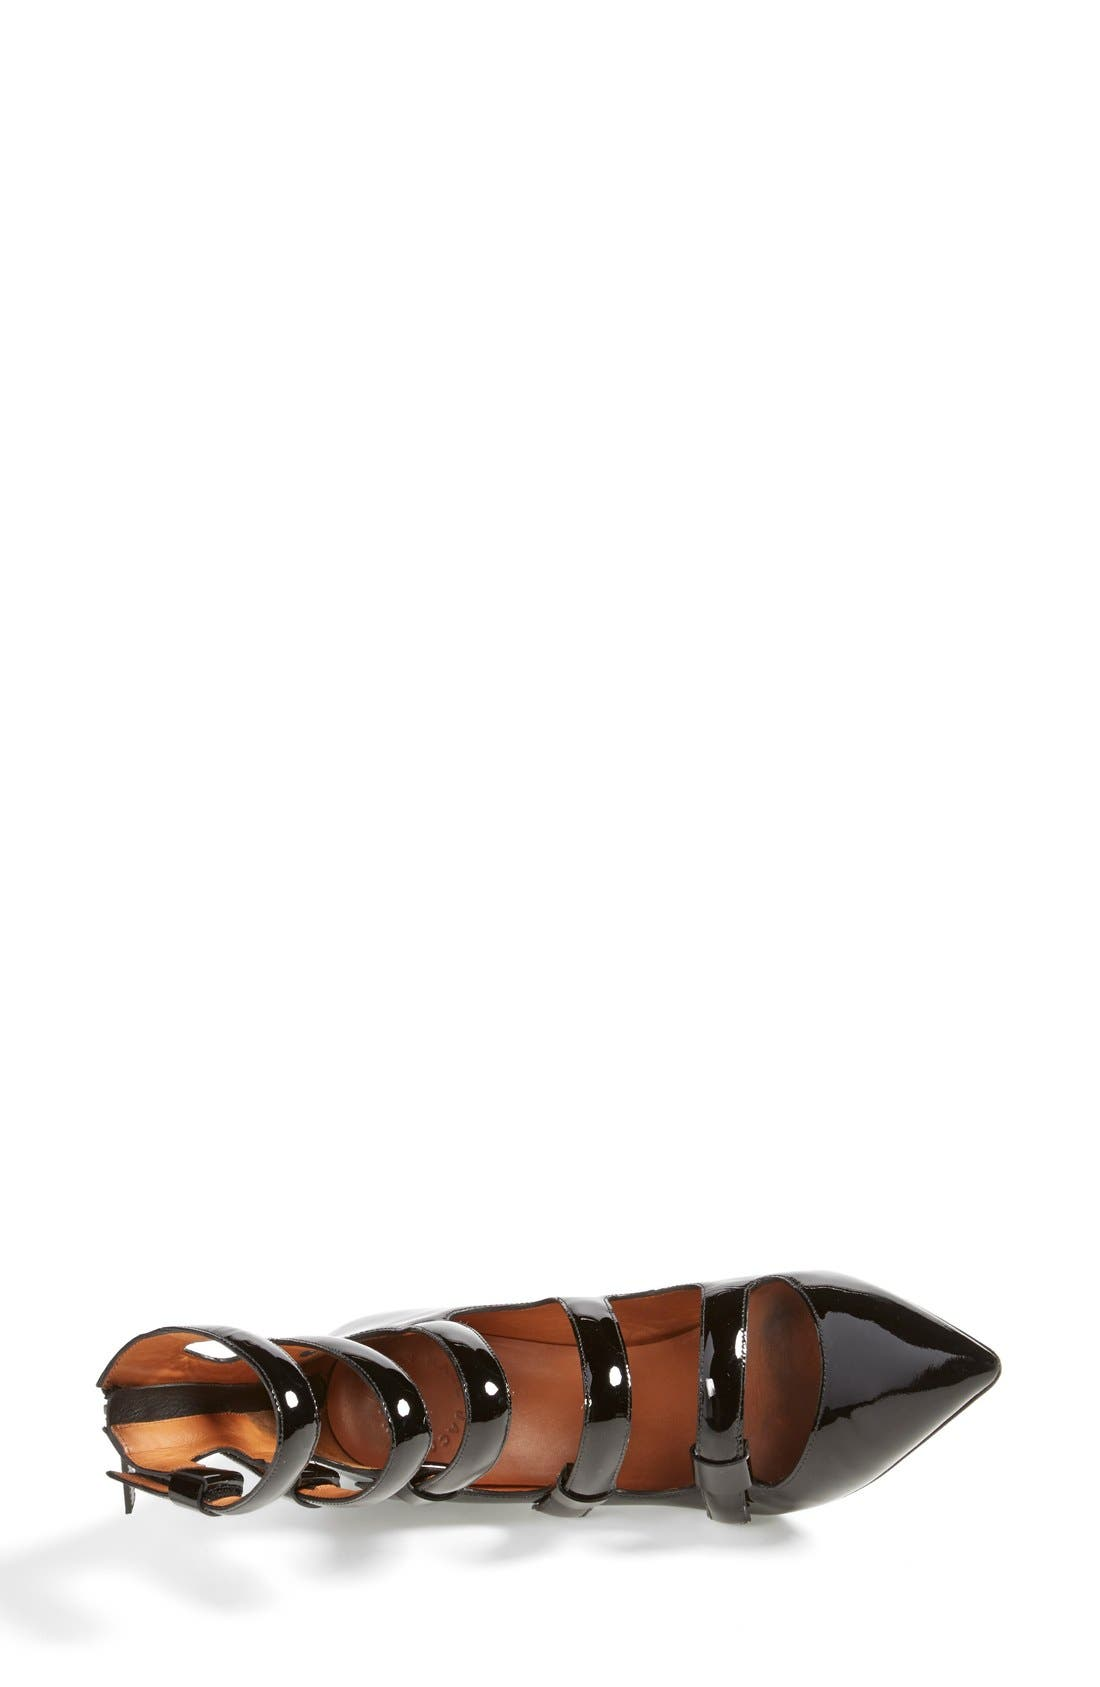 MARC JACOBS, MARC BY MARC JACOBS 'Runway' Pump, Alternate thumbnail 3, color, 001